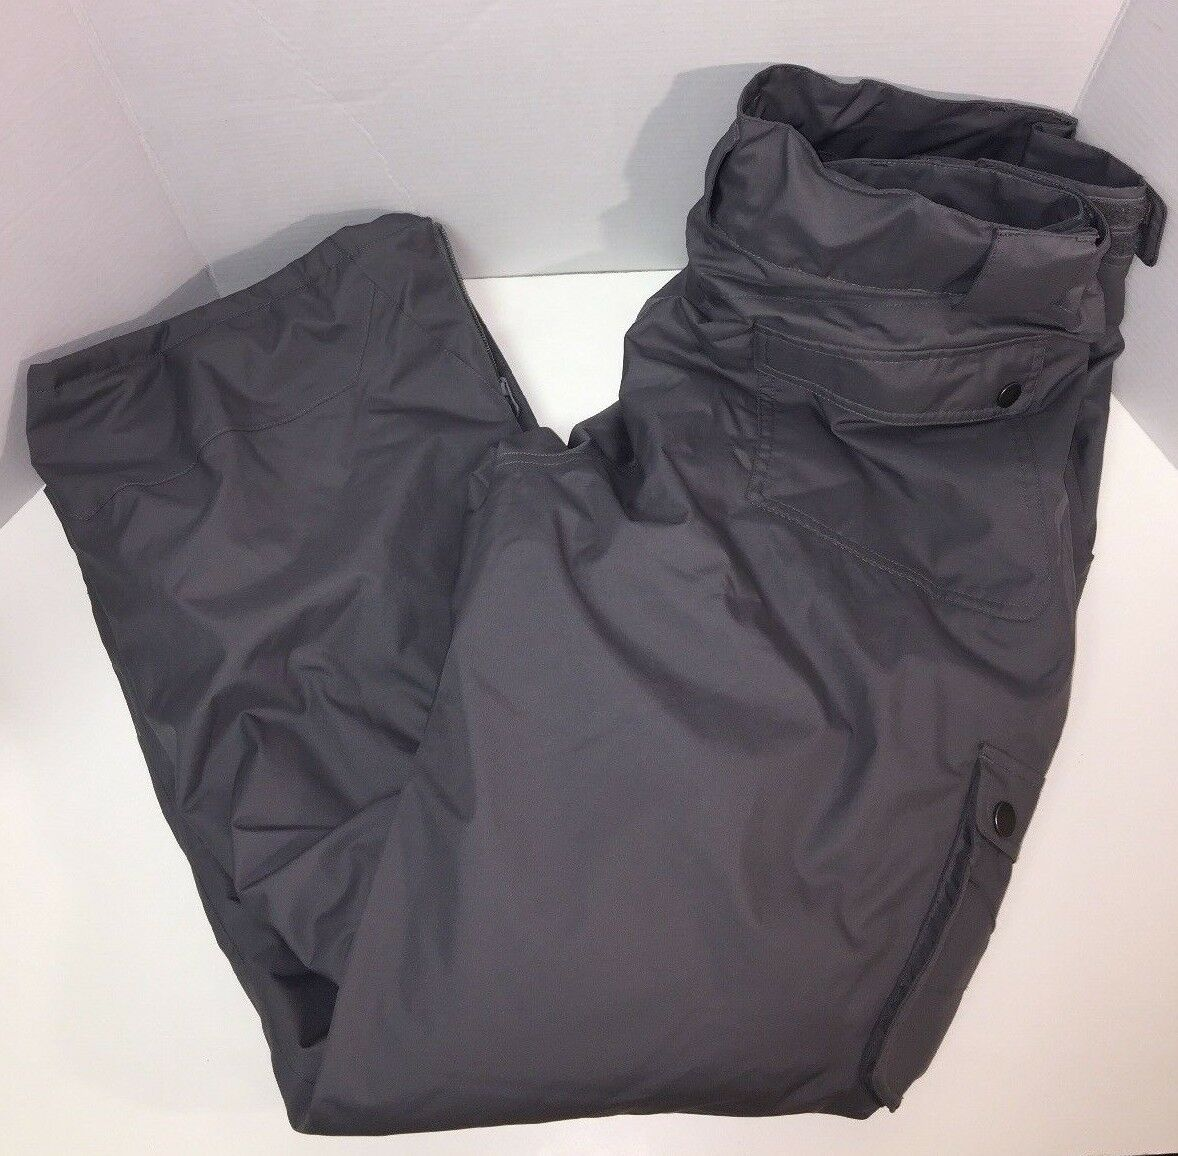 Cabelas Womens Sz  XL Insulated Winter Snow Pants Outdoor Sports Snowboard Ski  on sale